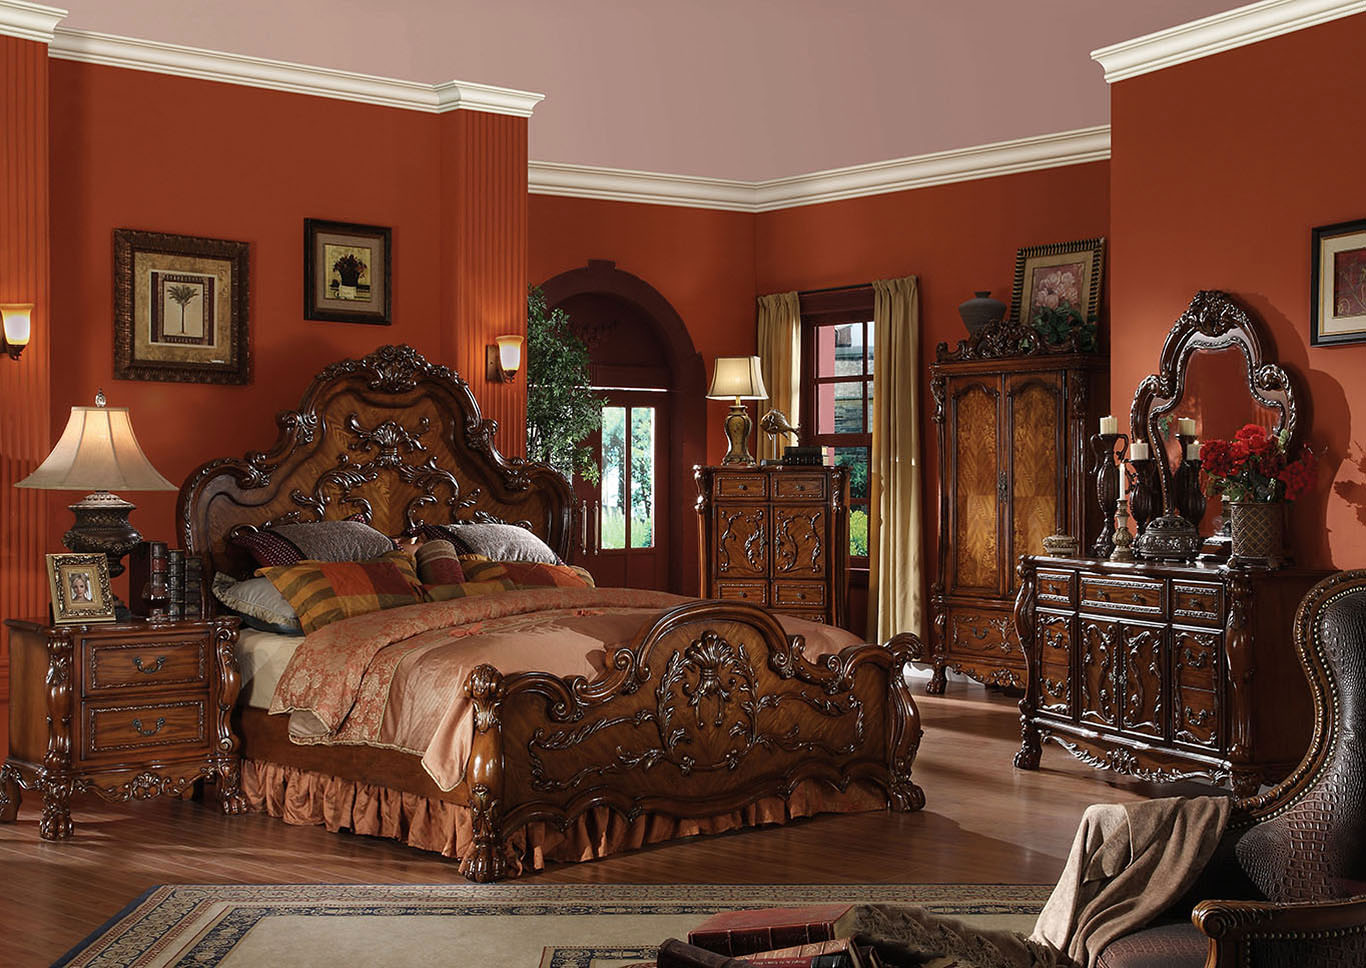 Dresden Cherry Oak California King Panel Bed w/Dresser and Mirror,Acme